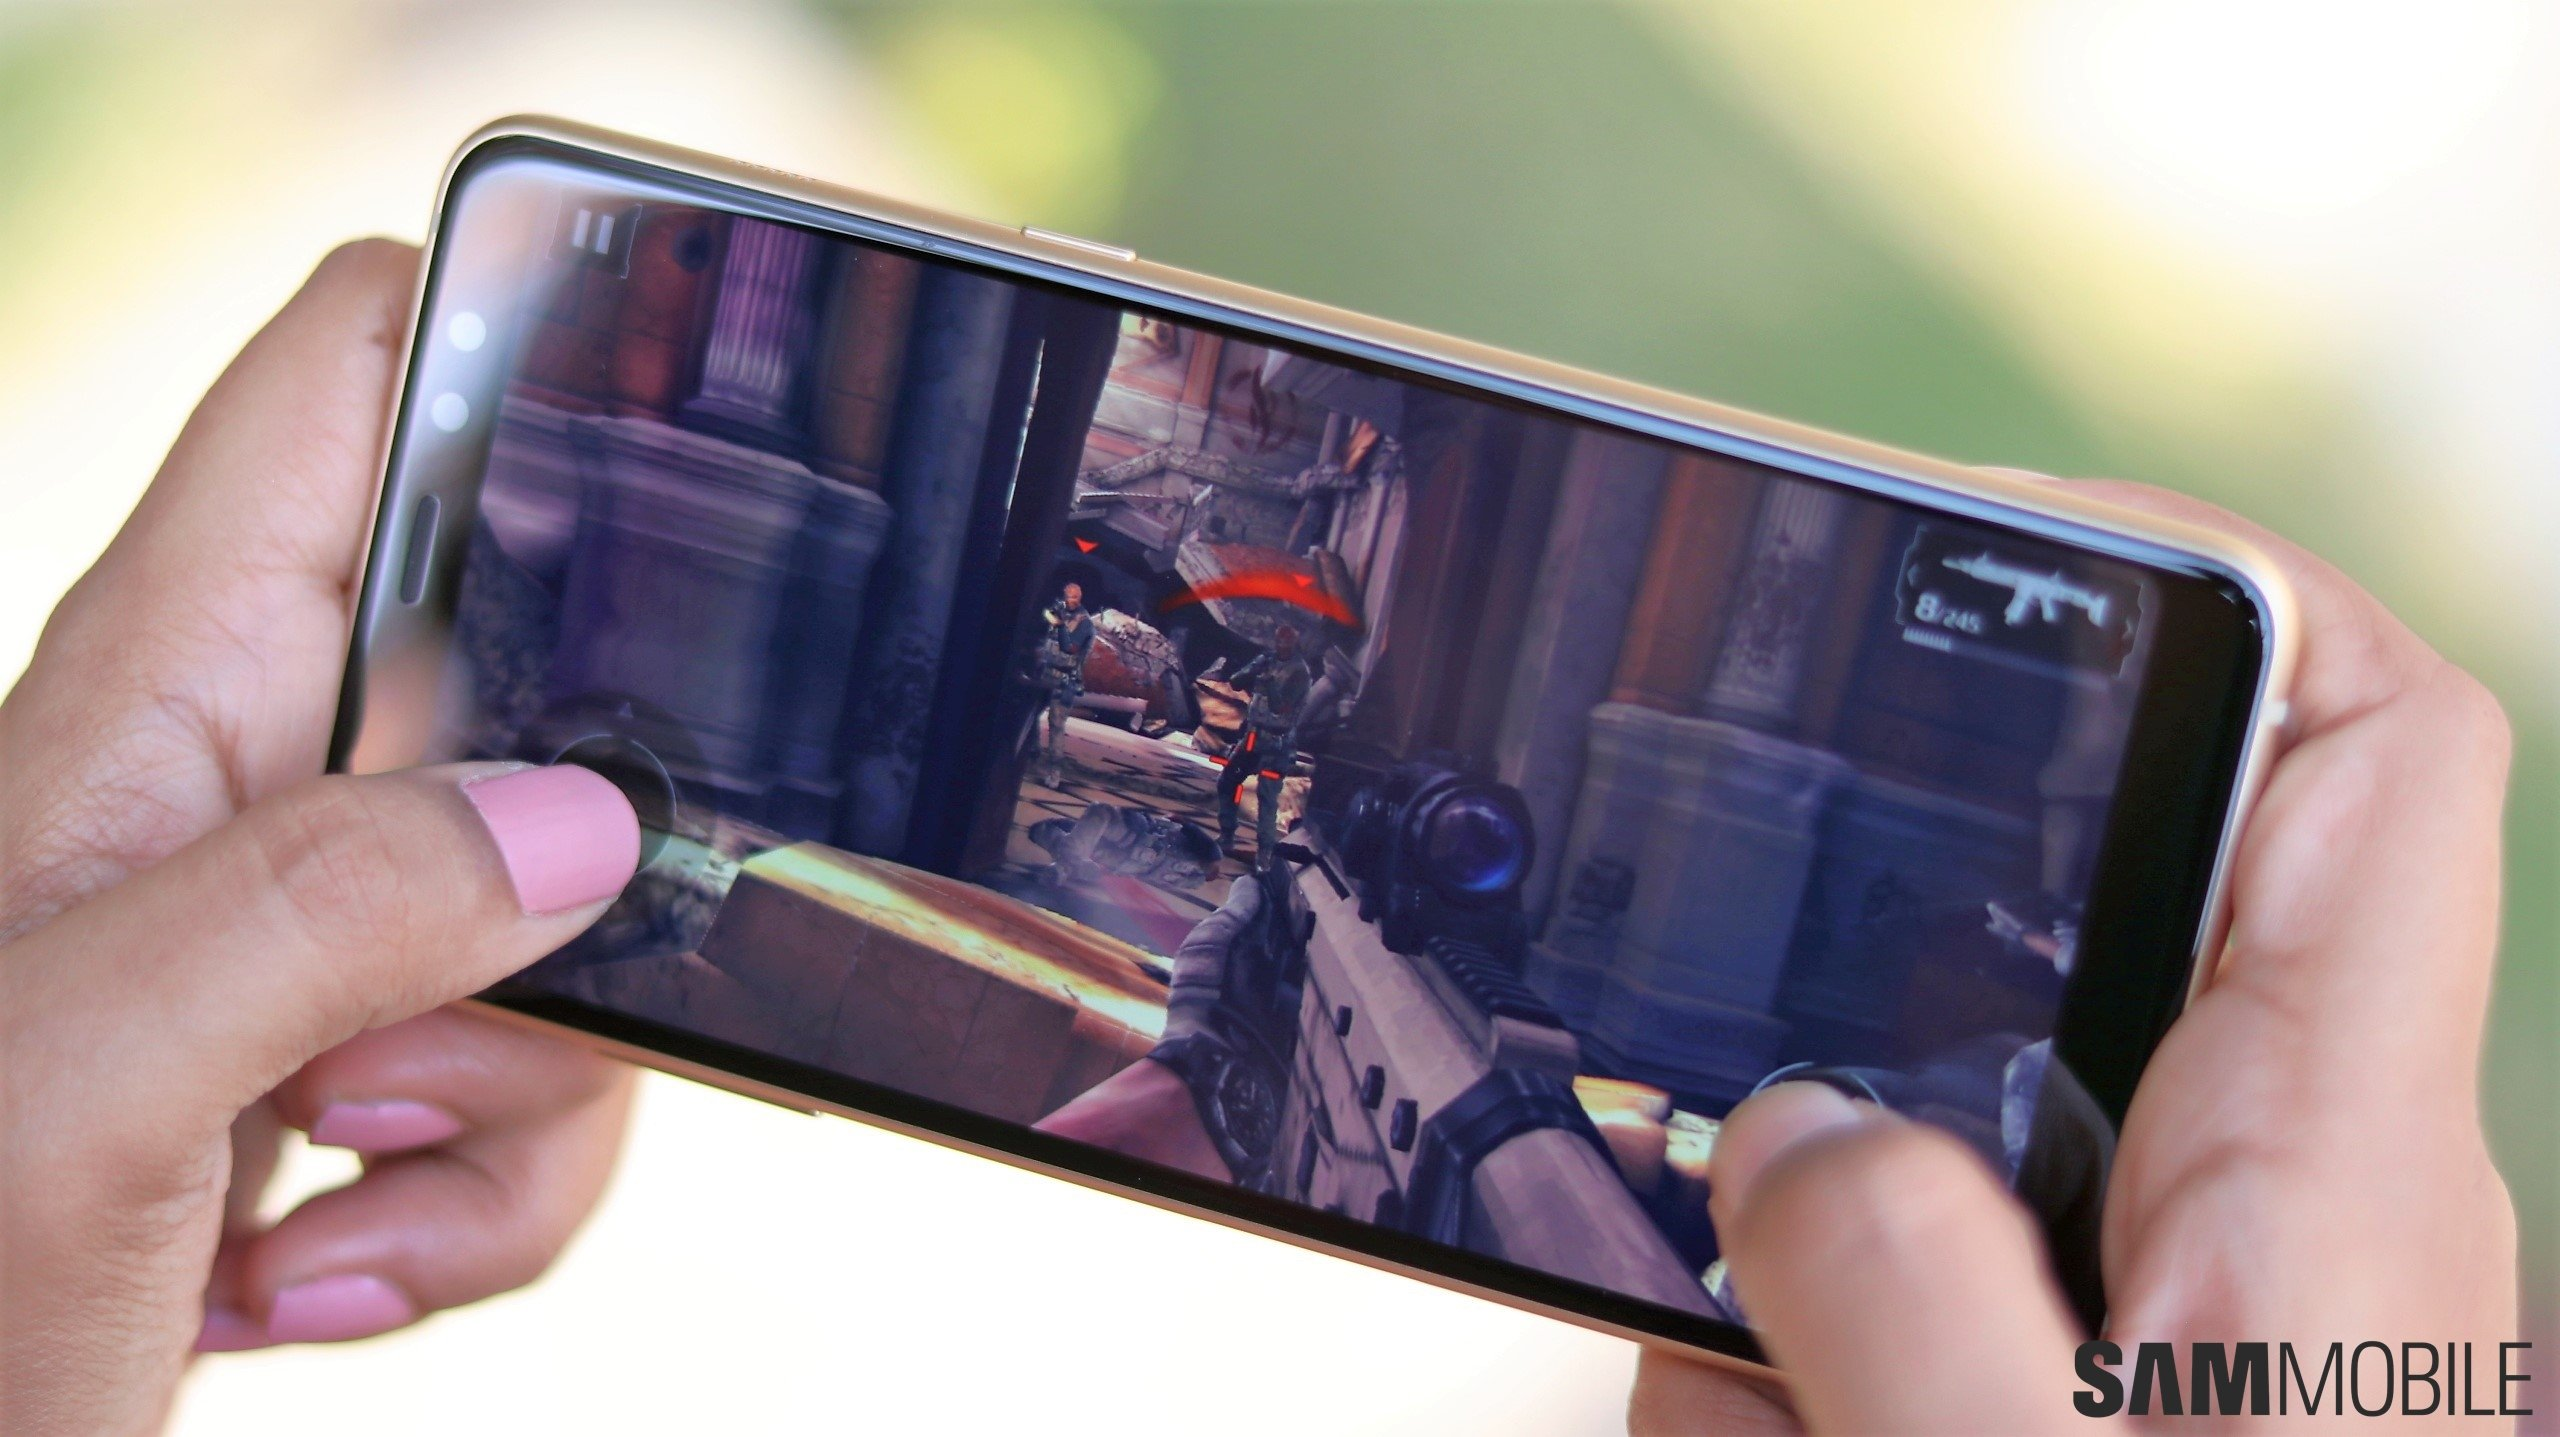 Should Samsung also make a gaming phone? We don't think so - SamMobile